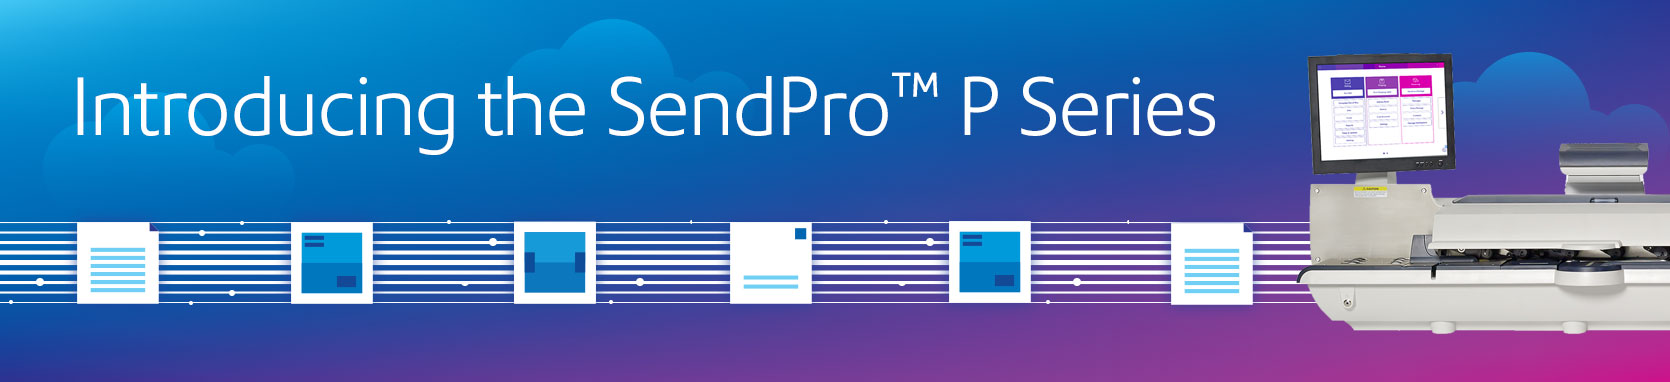 The SendPro P Series: Seamlessly integrating mailing, shipping, tracking and receiving across multiple carrier options.